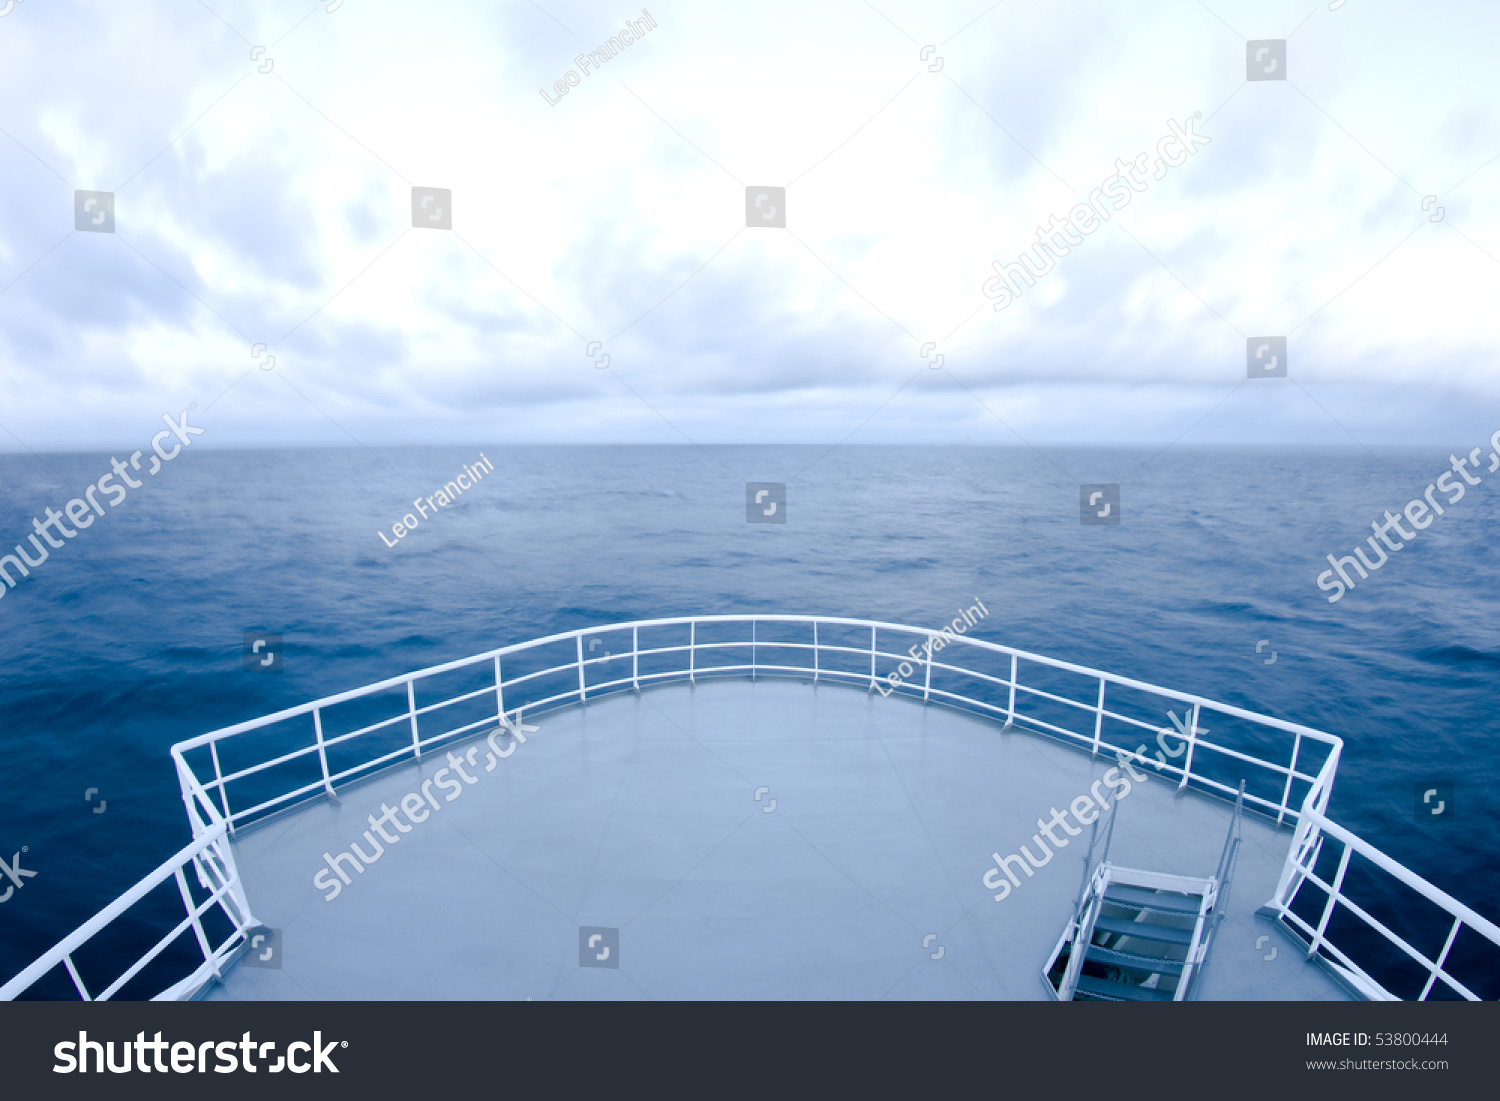 Ships Bow Stock Photos, Royalty-Free Images & Vectors - Shutterstock